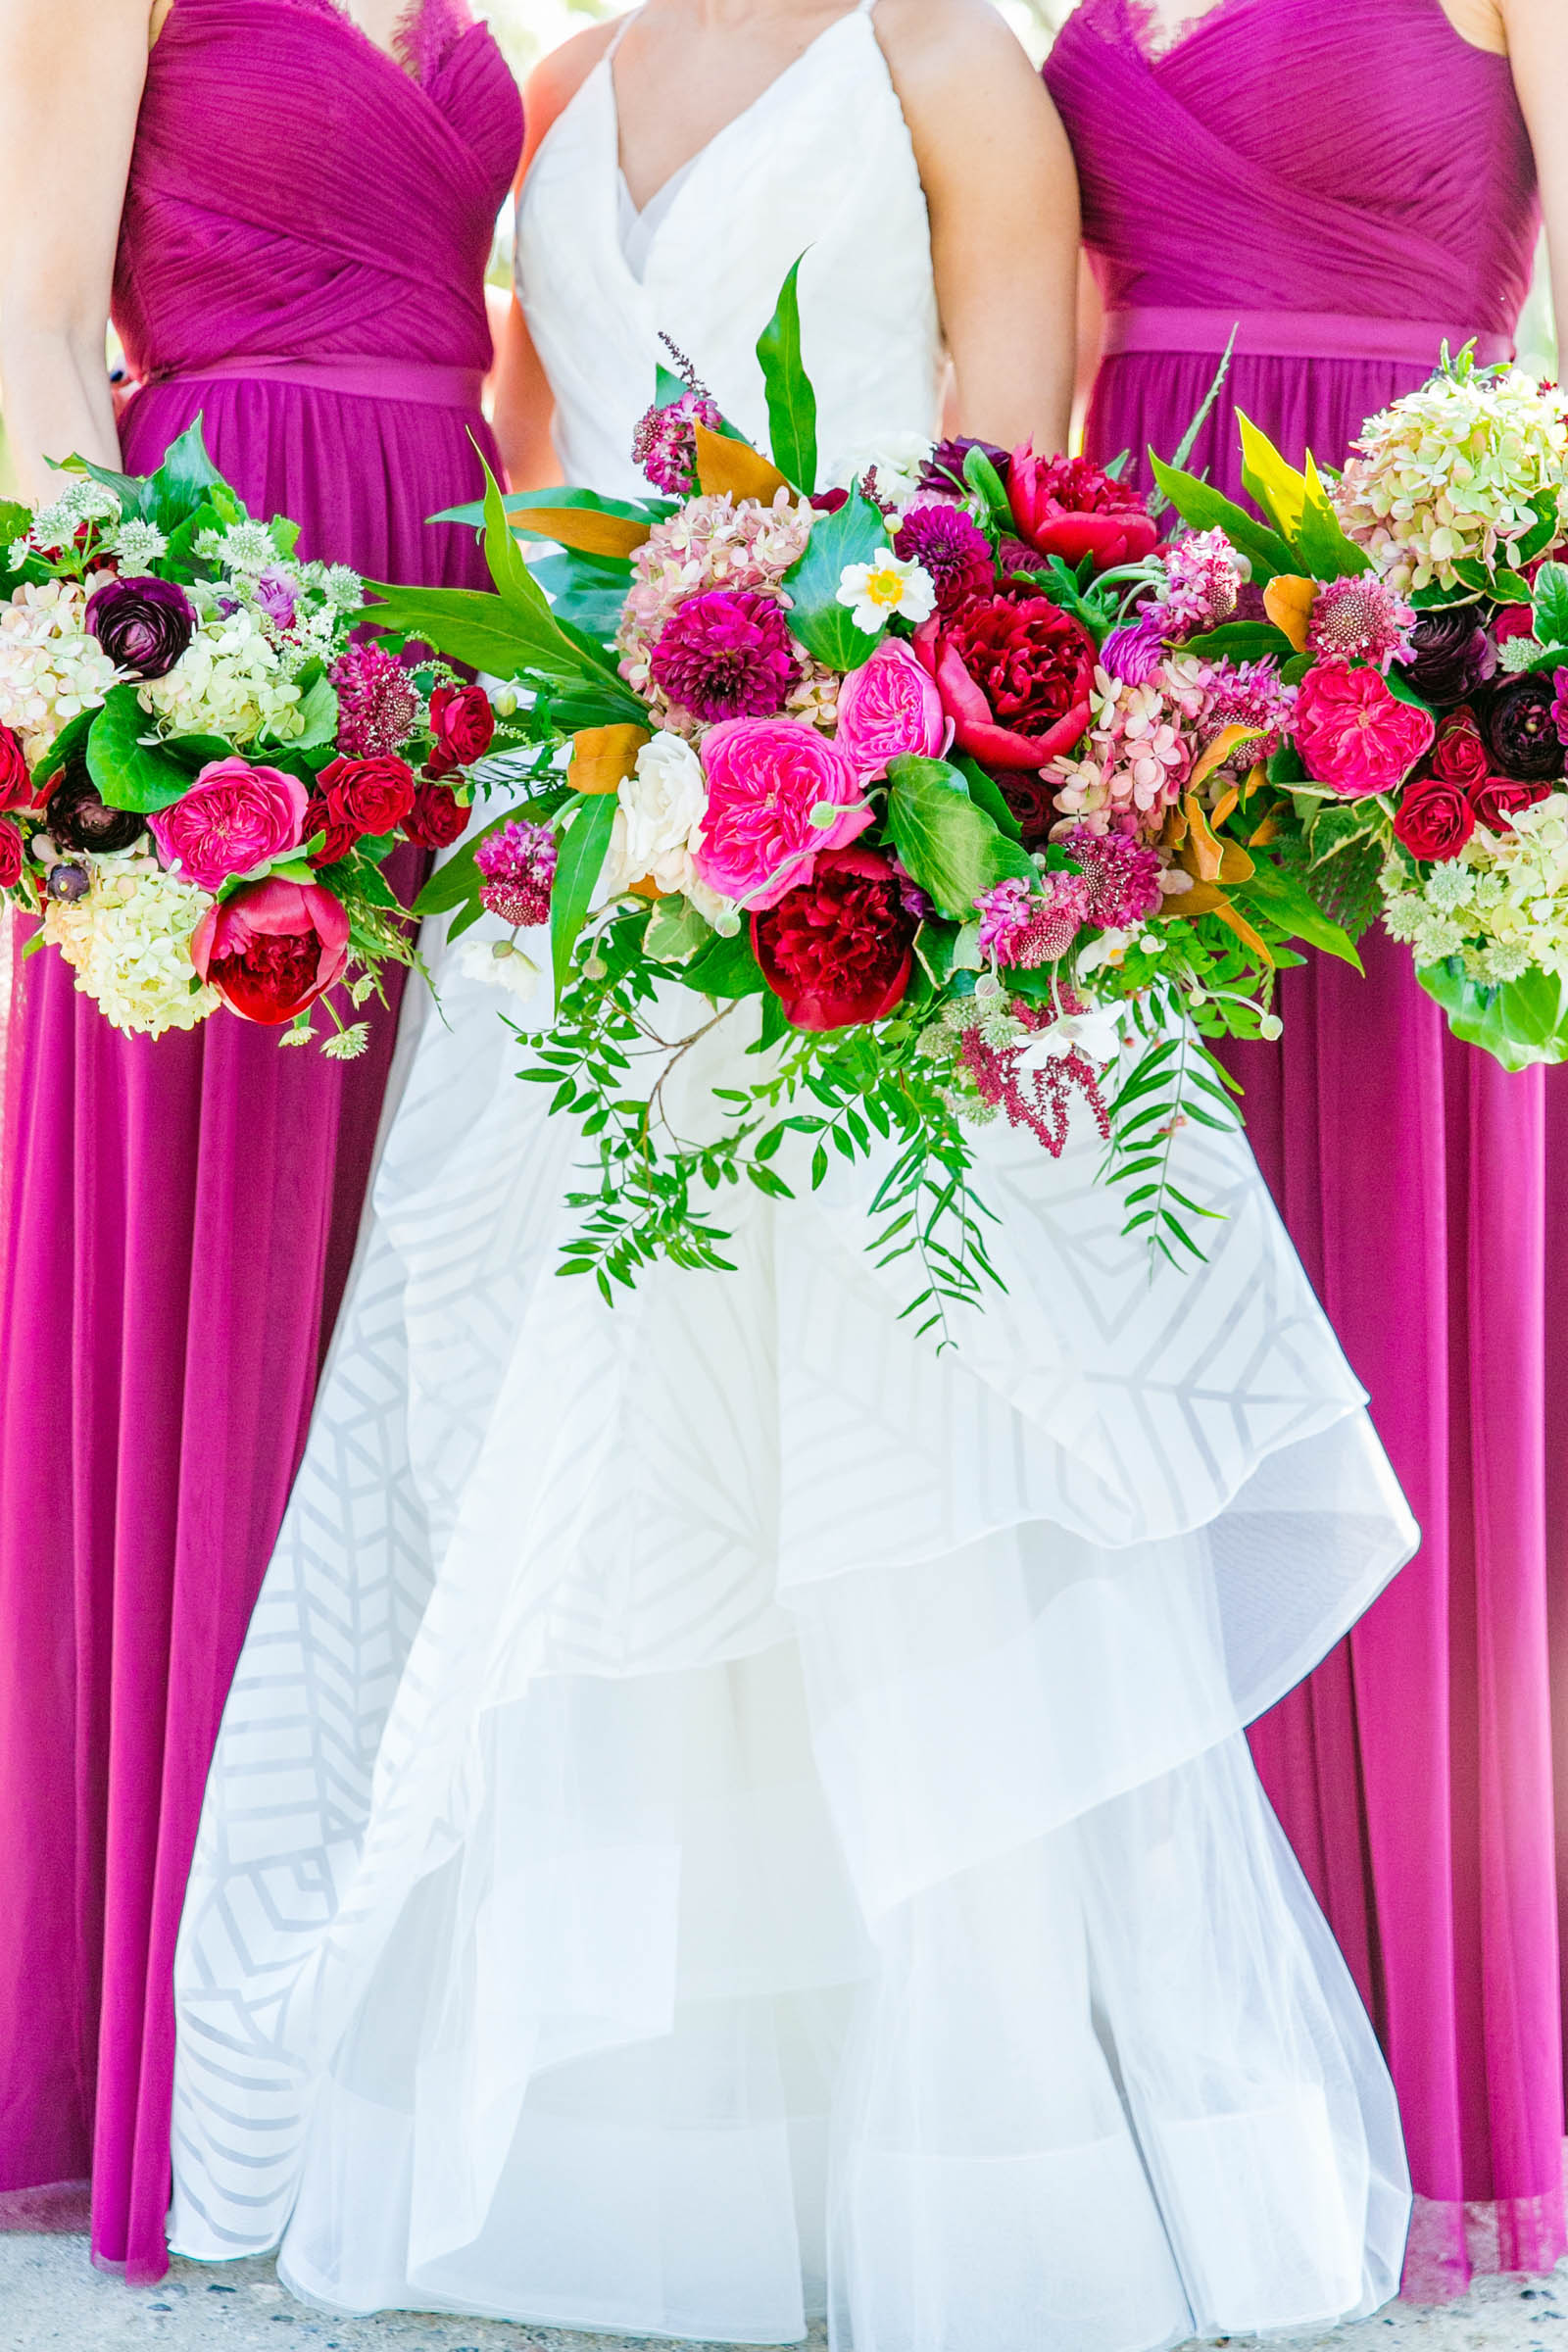 Bride with bridesmaids in fuschia and bright bouquets - photo by Dana Cubbage Weddings